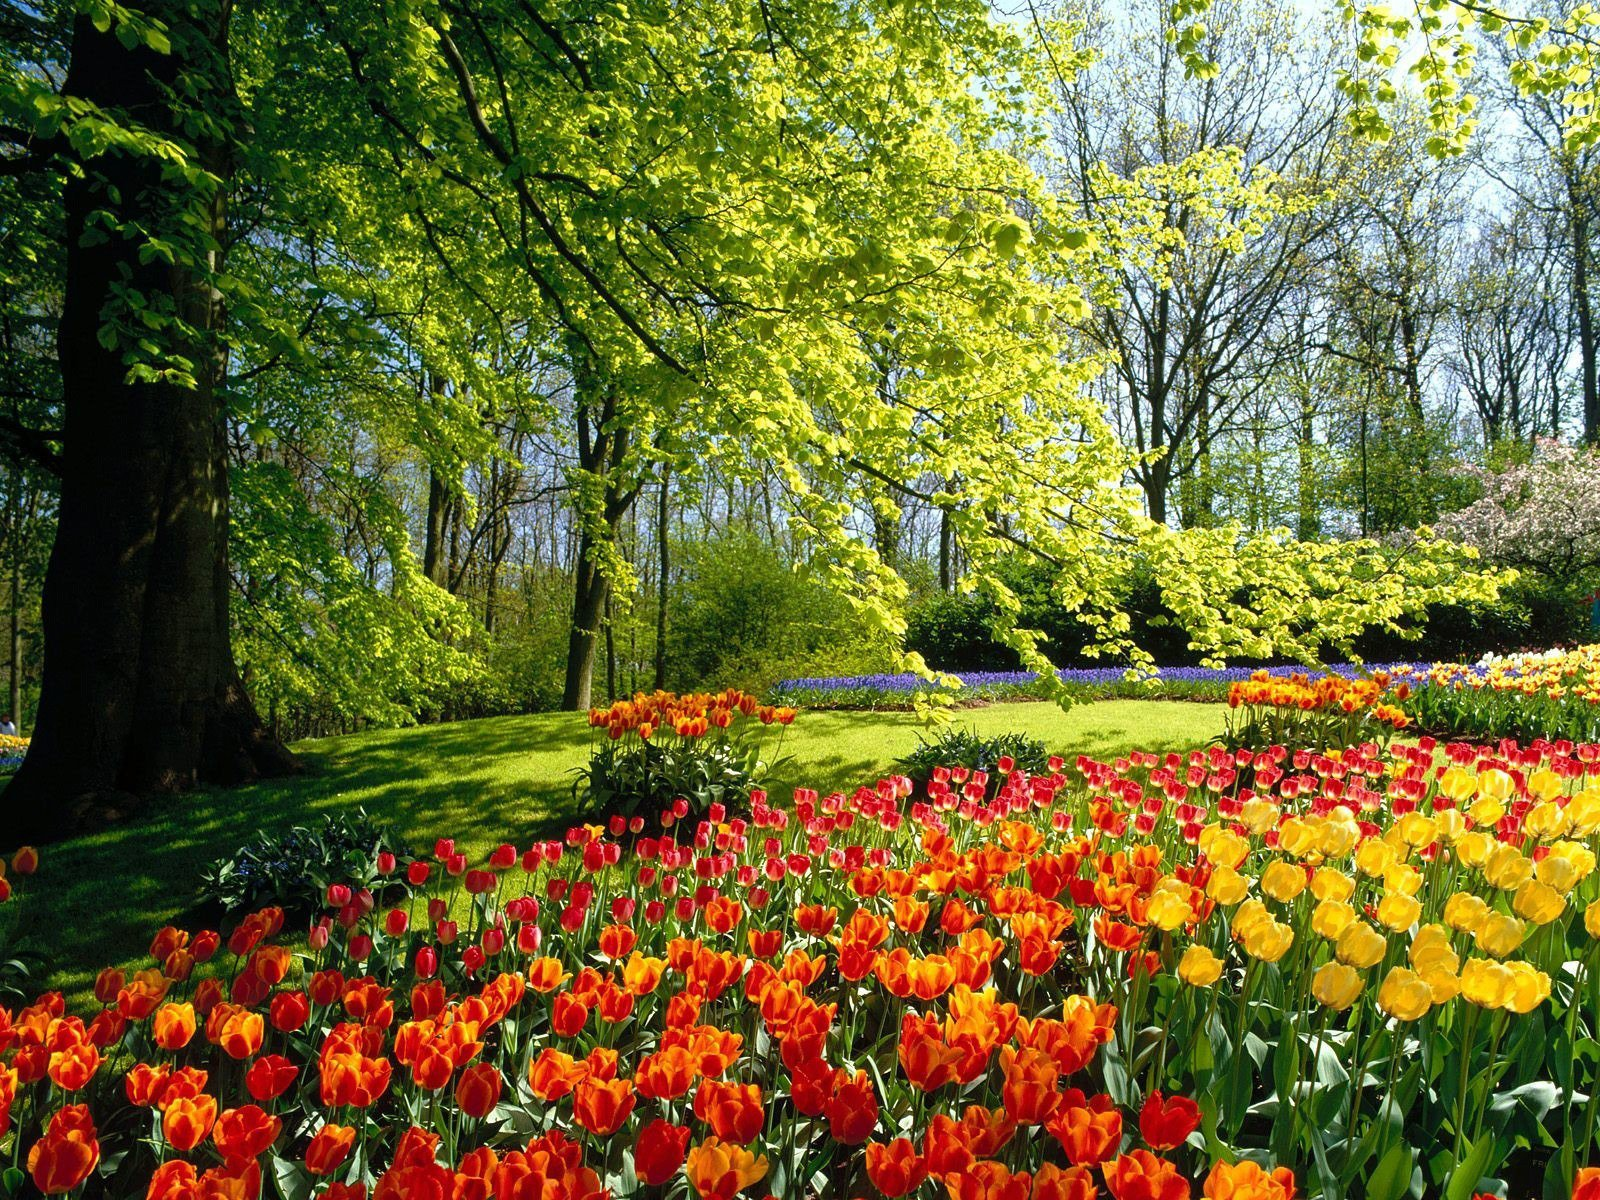 Cool Spring Background wallpaper 1600x1200 29794 1600x1200